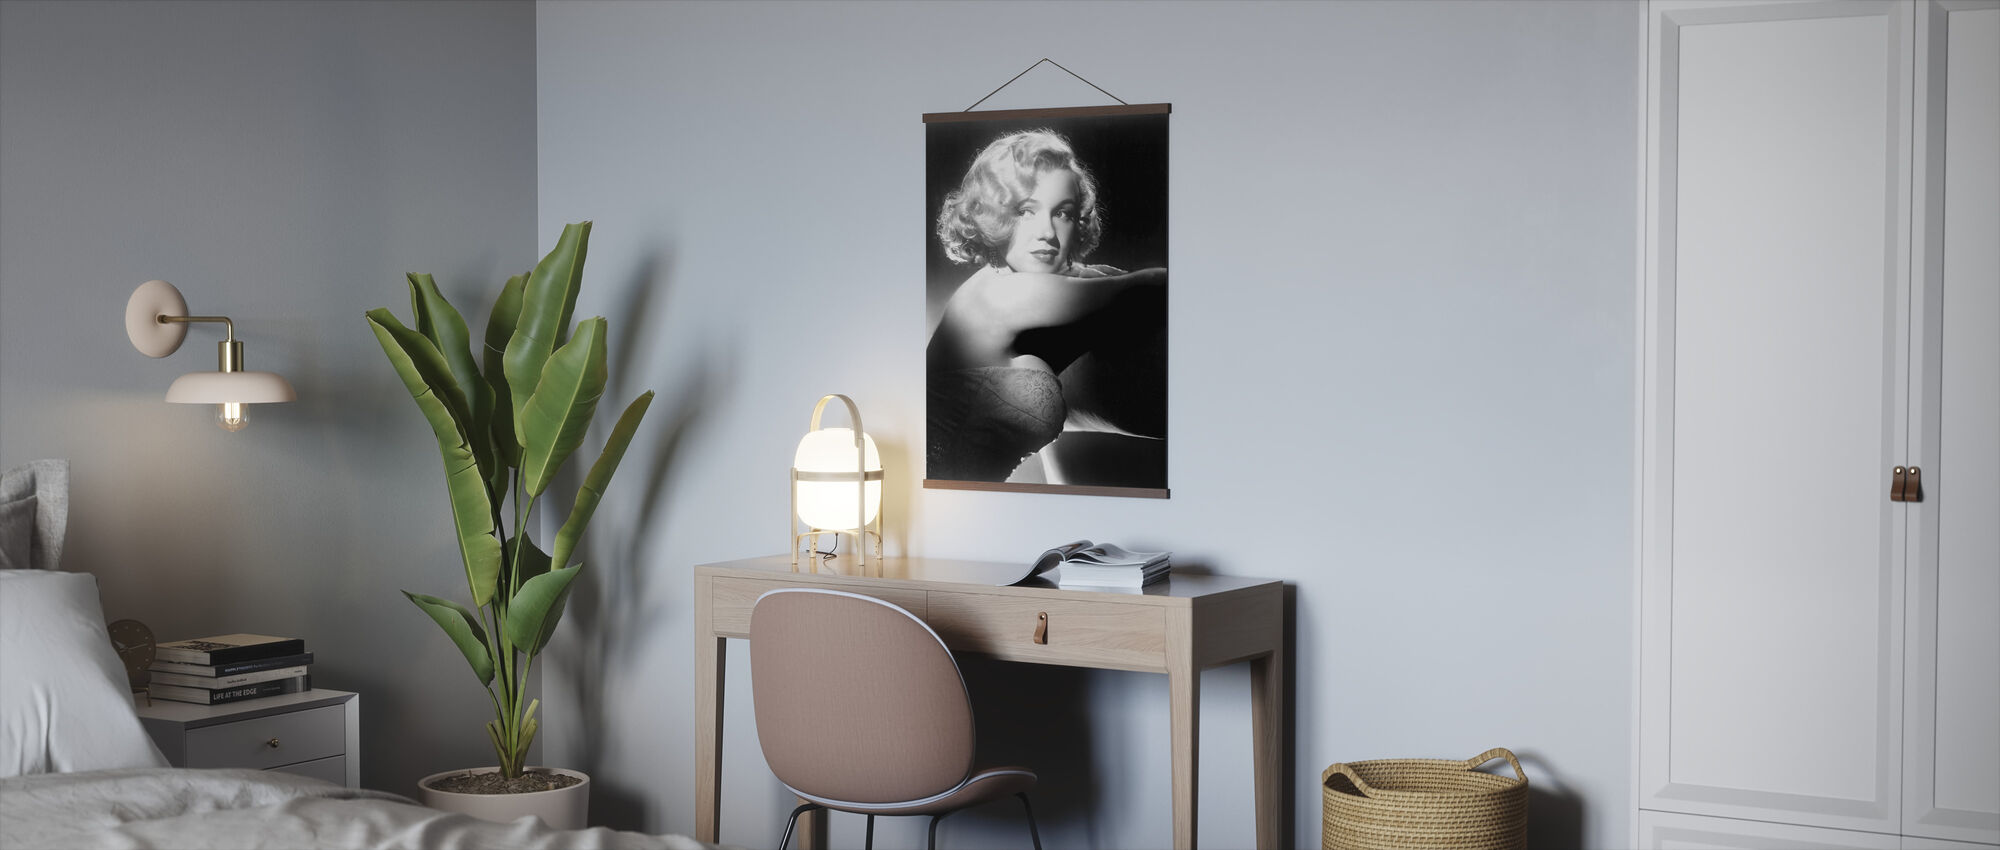 All About Eve - Poster - Office